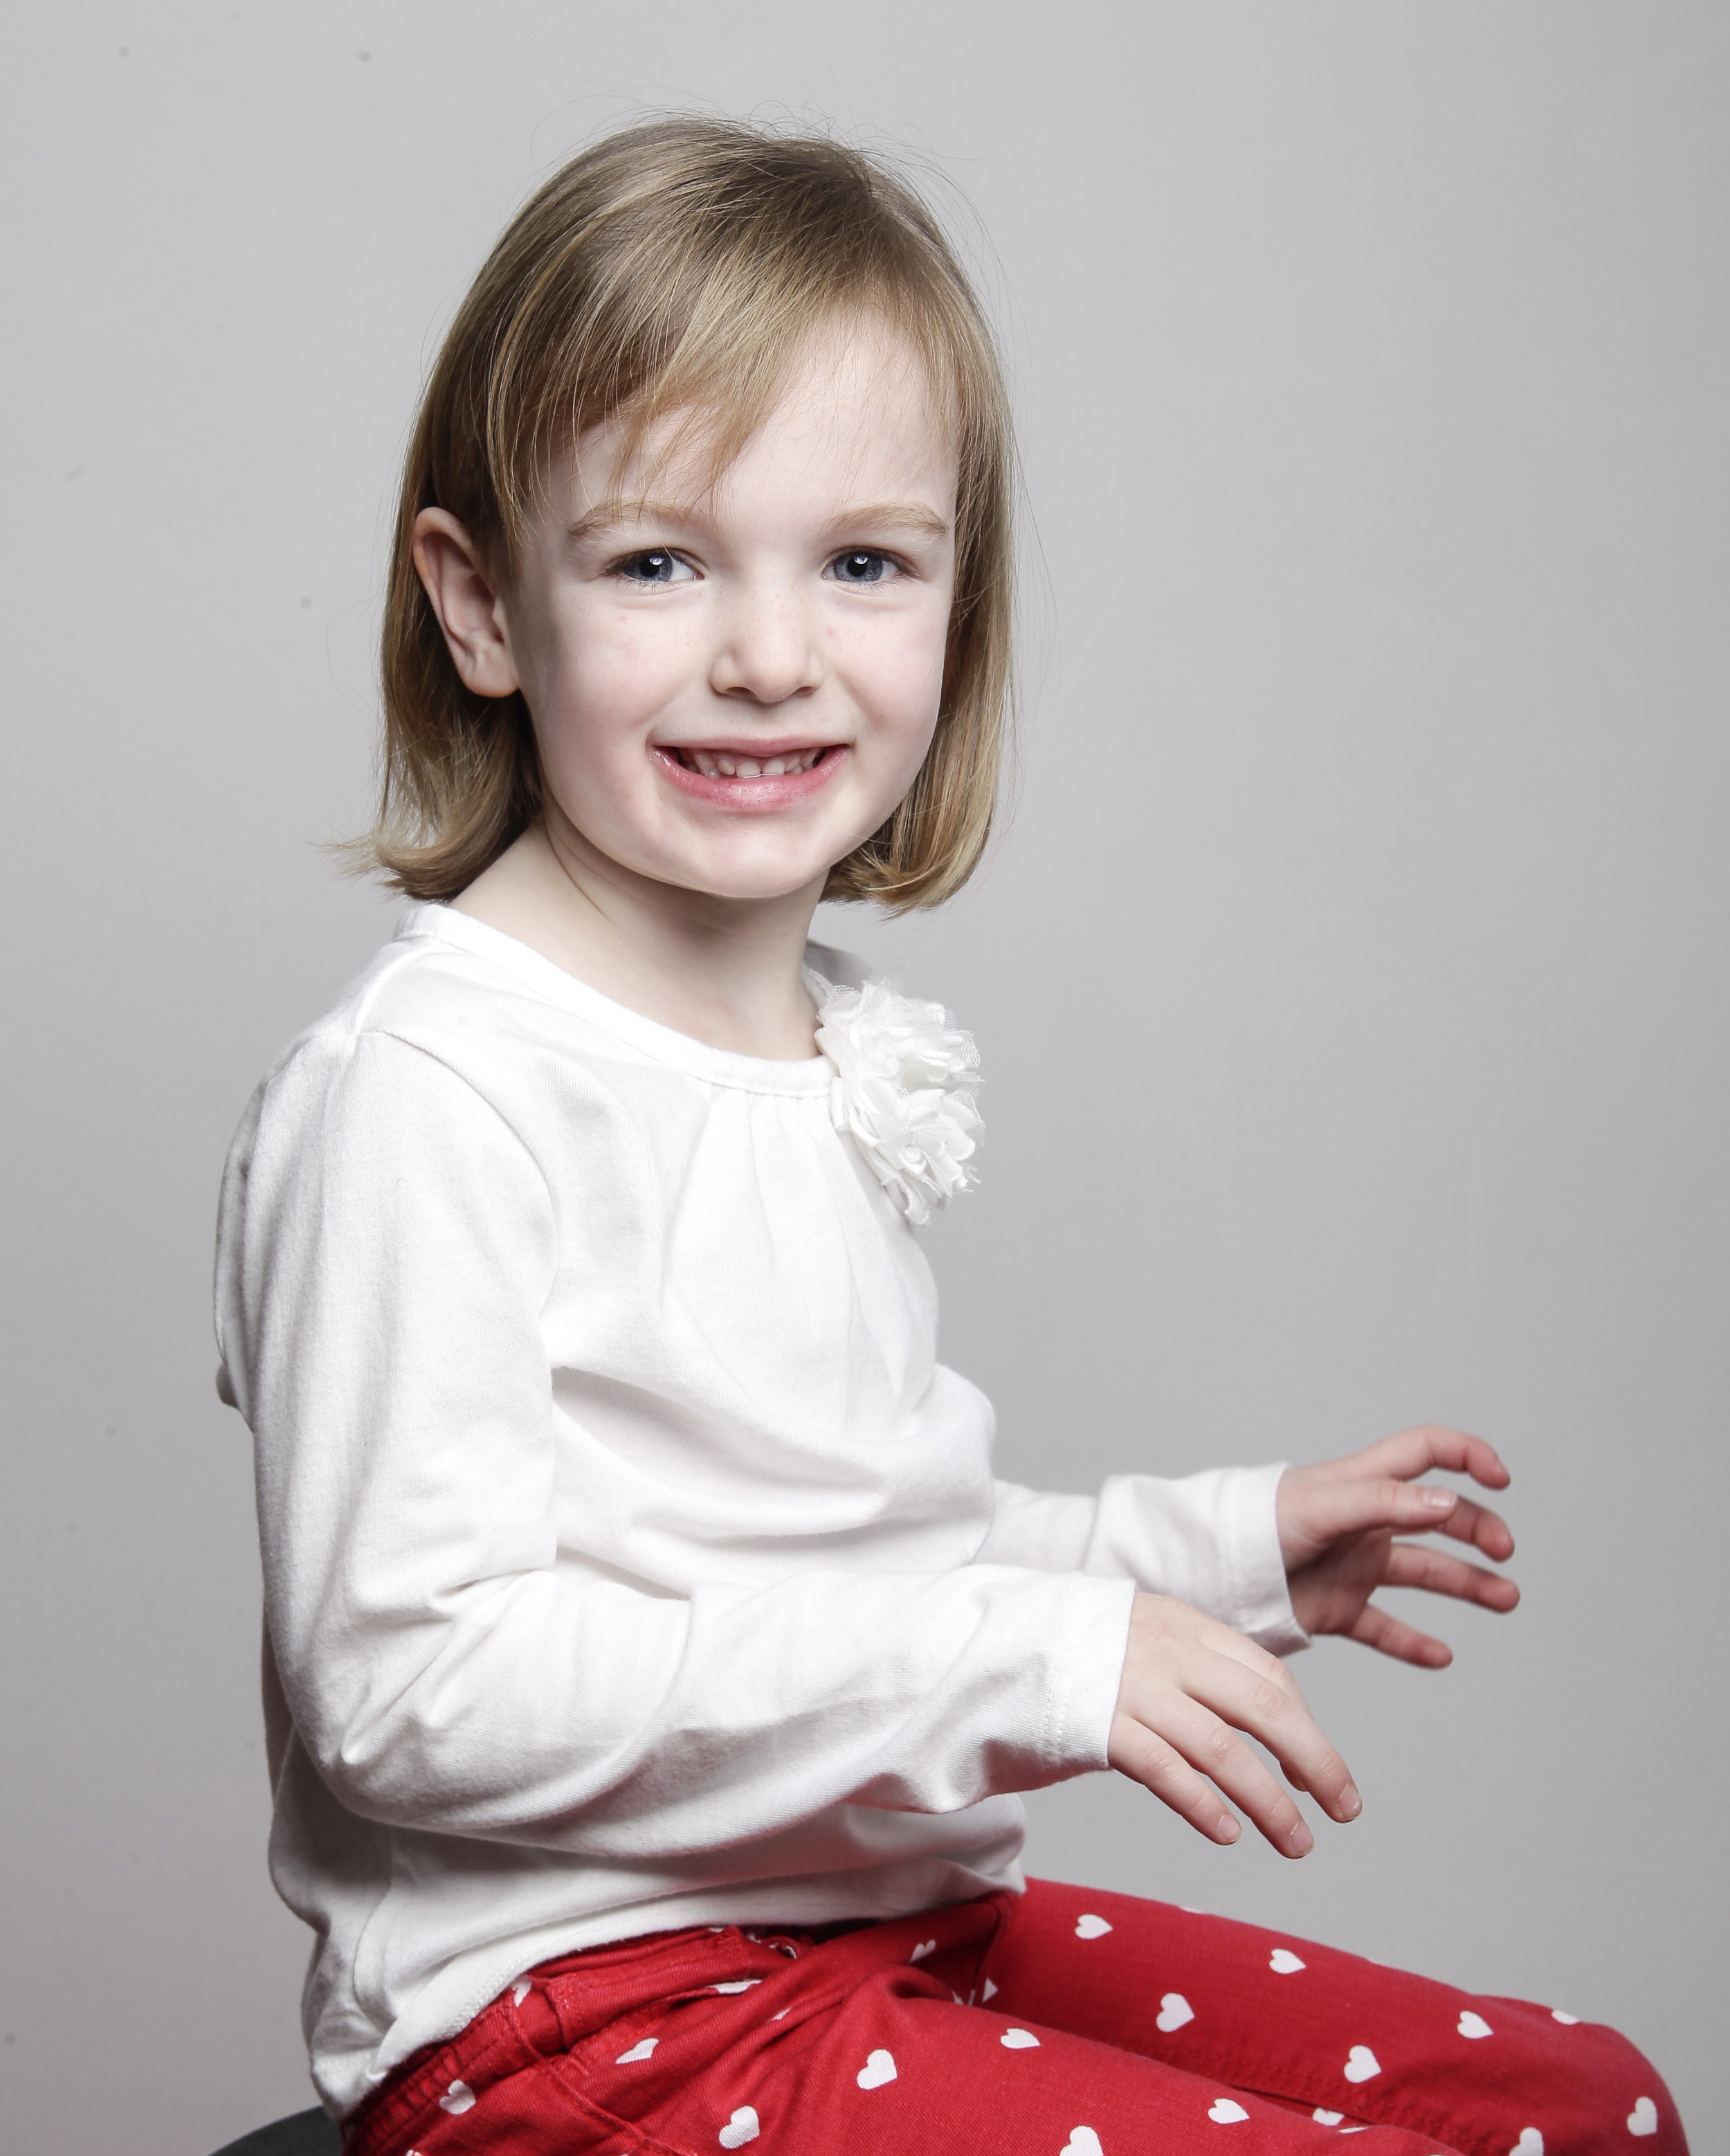 Ashely Smiling_Kids Portrait.jpg